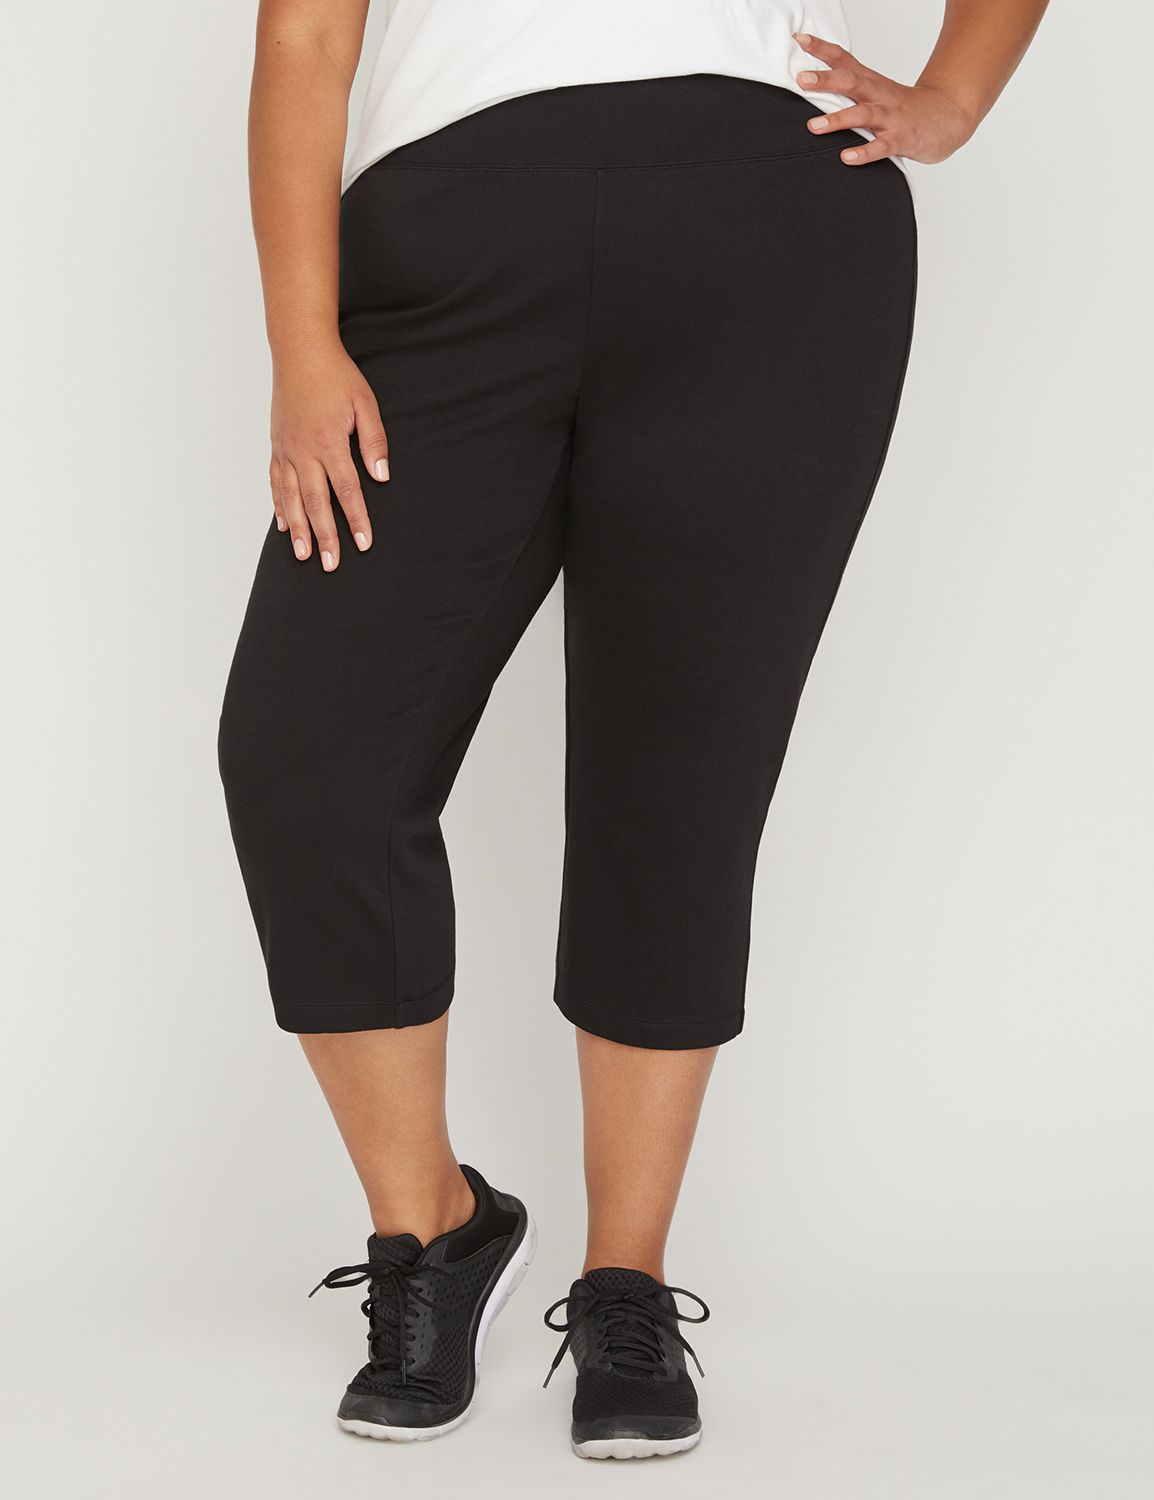 Yoga Capri Yoga Capri MP-300005171